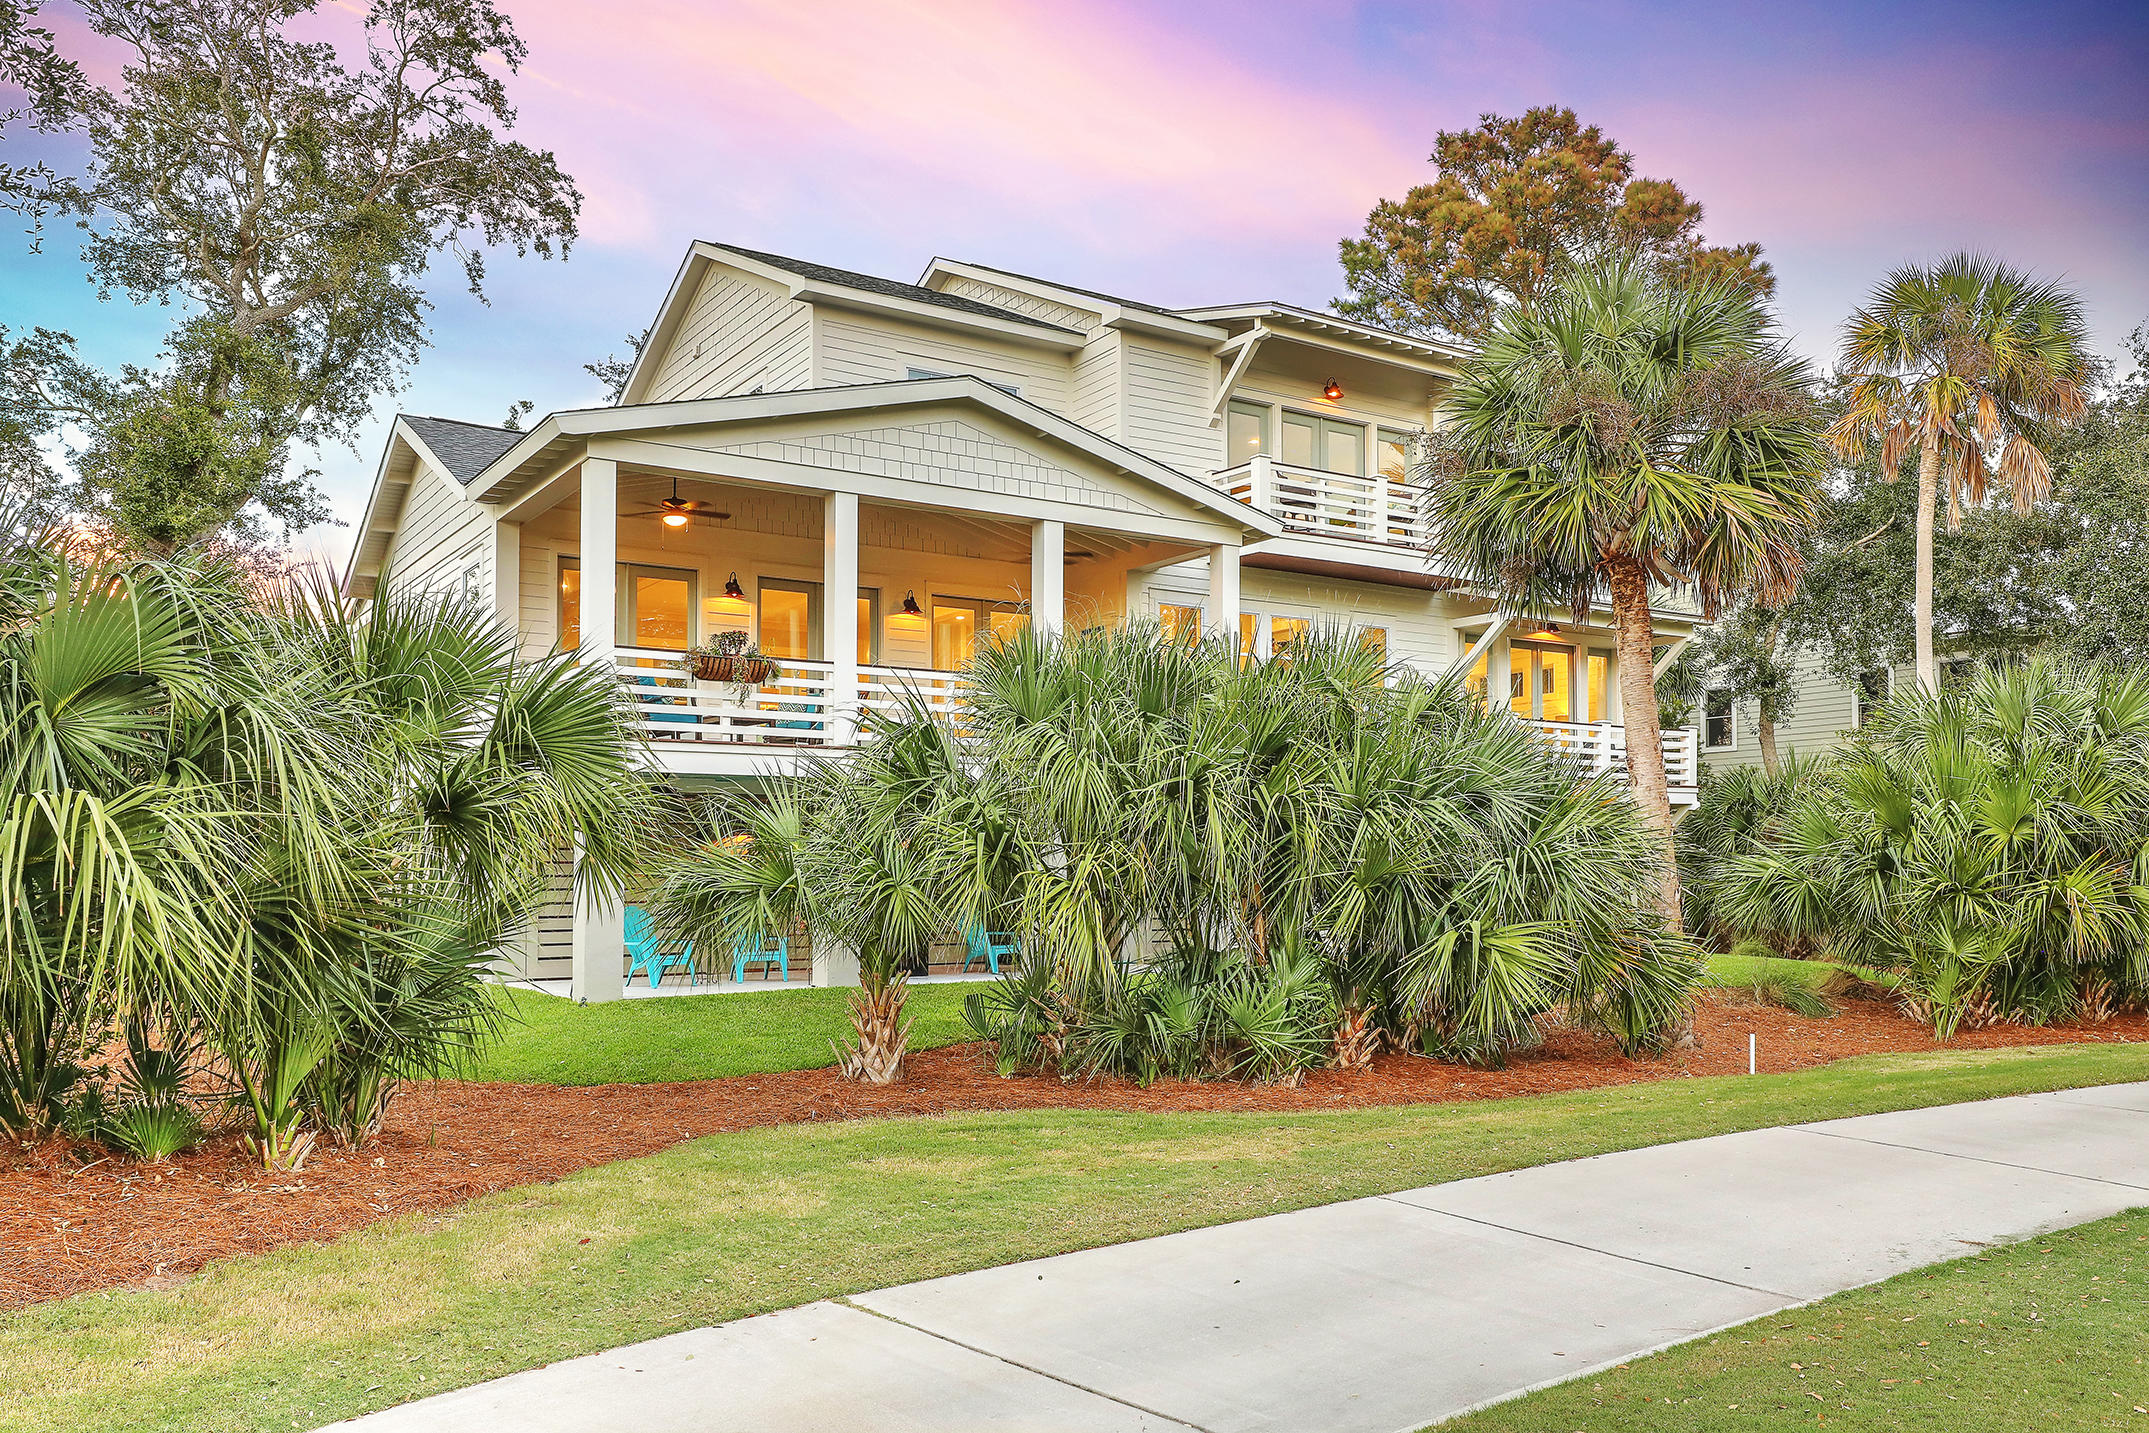 Wild Dunes Homes For Sale - 55 Seagrass, Isle of Palms, SC - 1